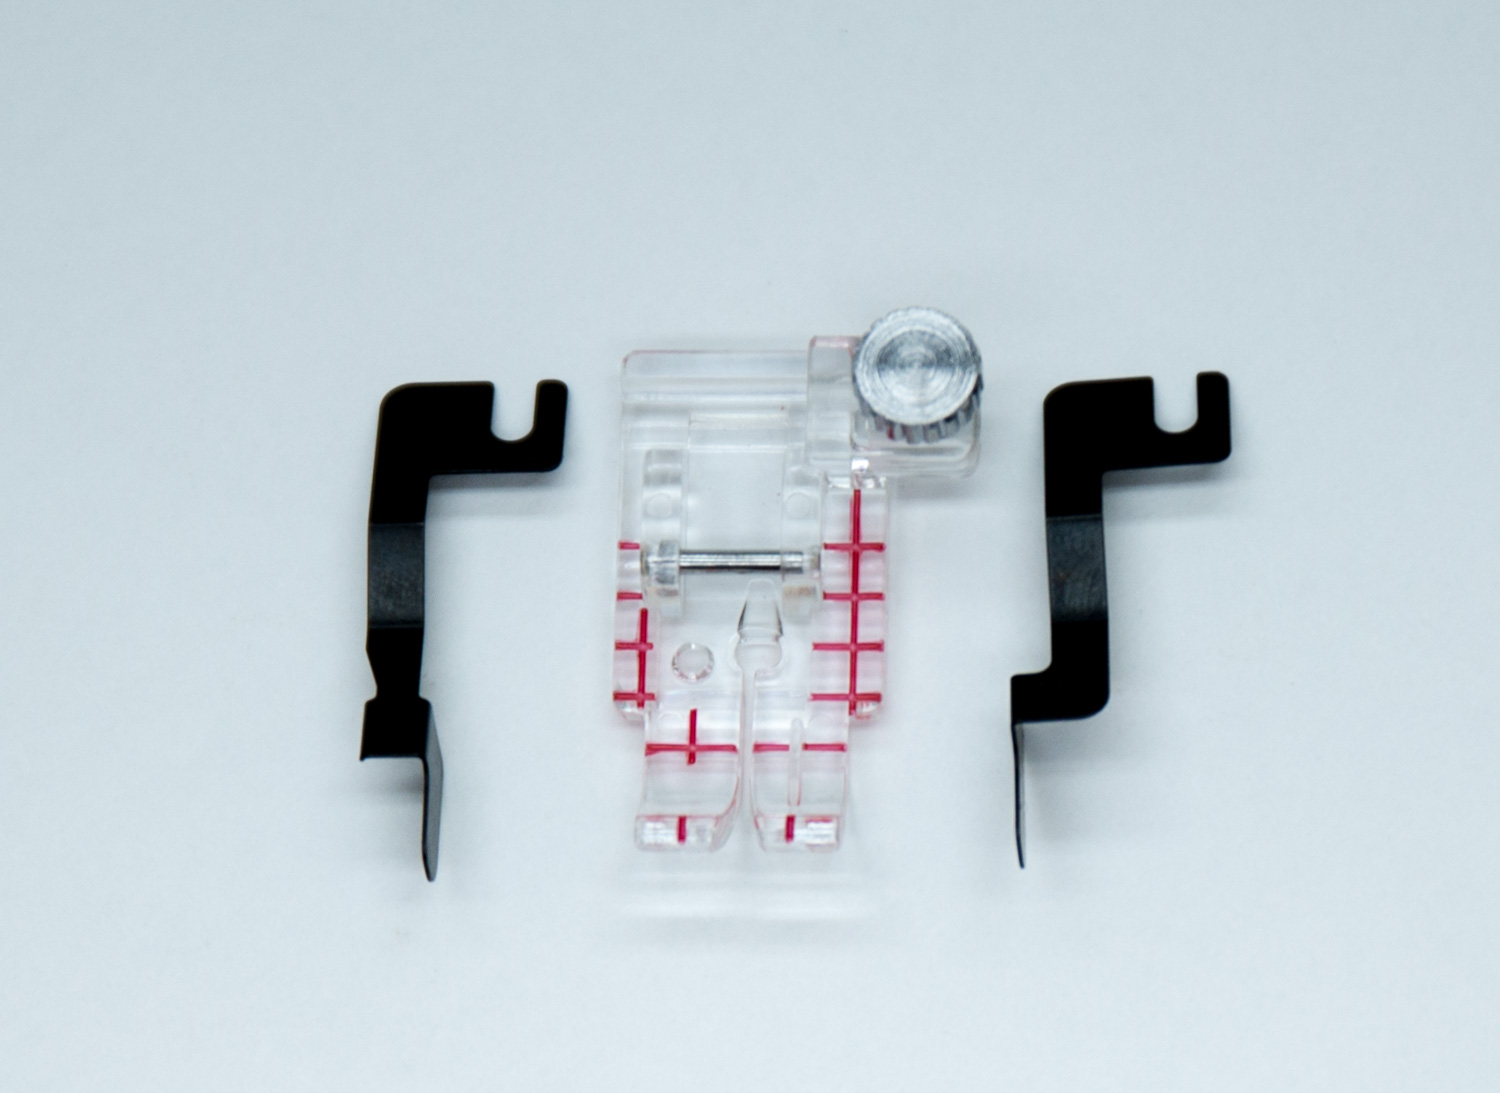 HQ Stitch Clear View Quilting Foot and Guide Set (210)